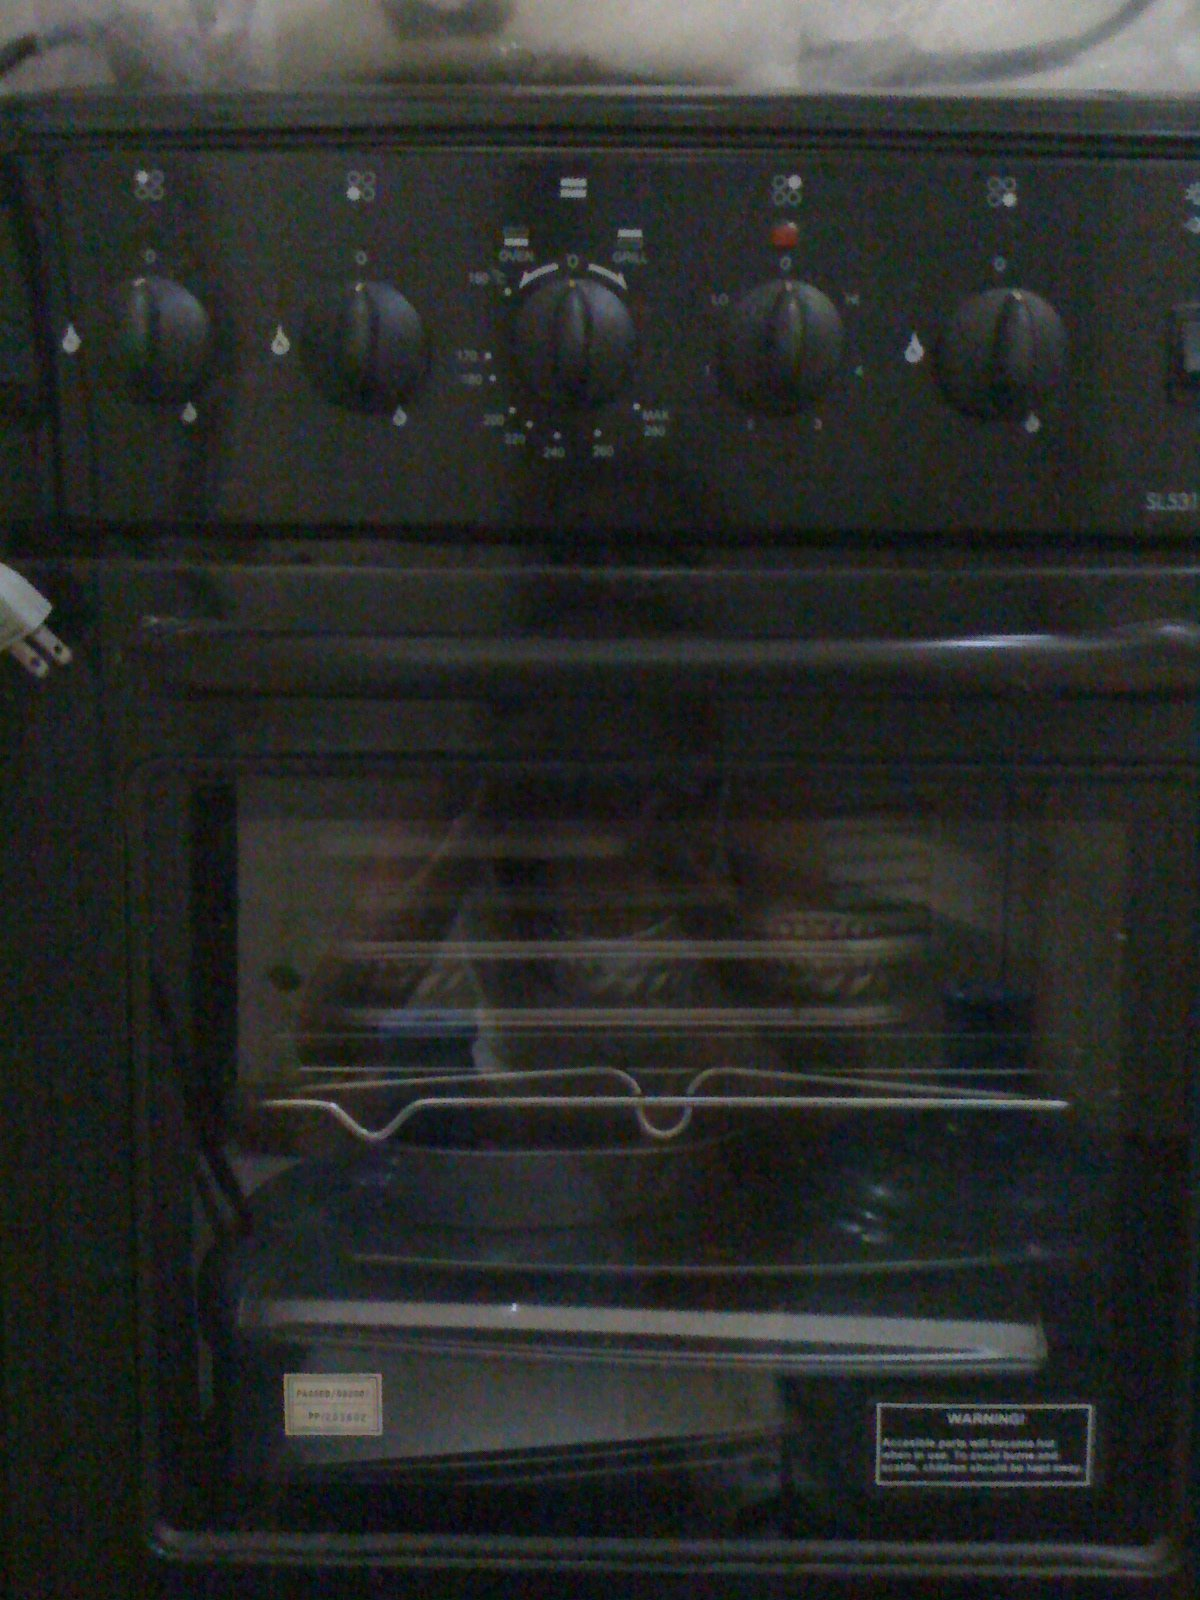 FOR SALE: Semi-used Lagermania Oven with FREE rangehood